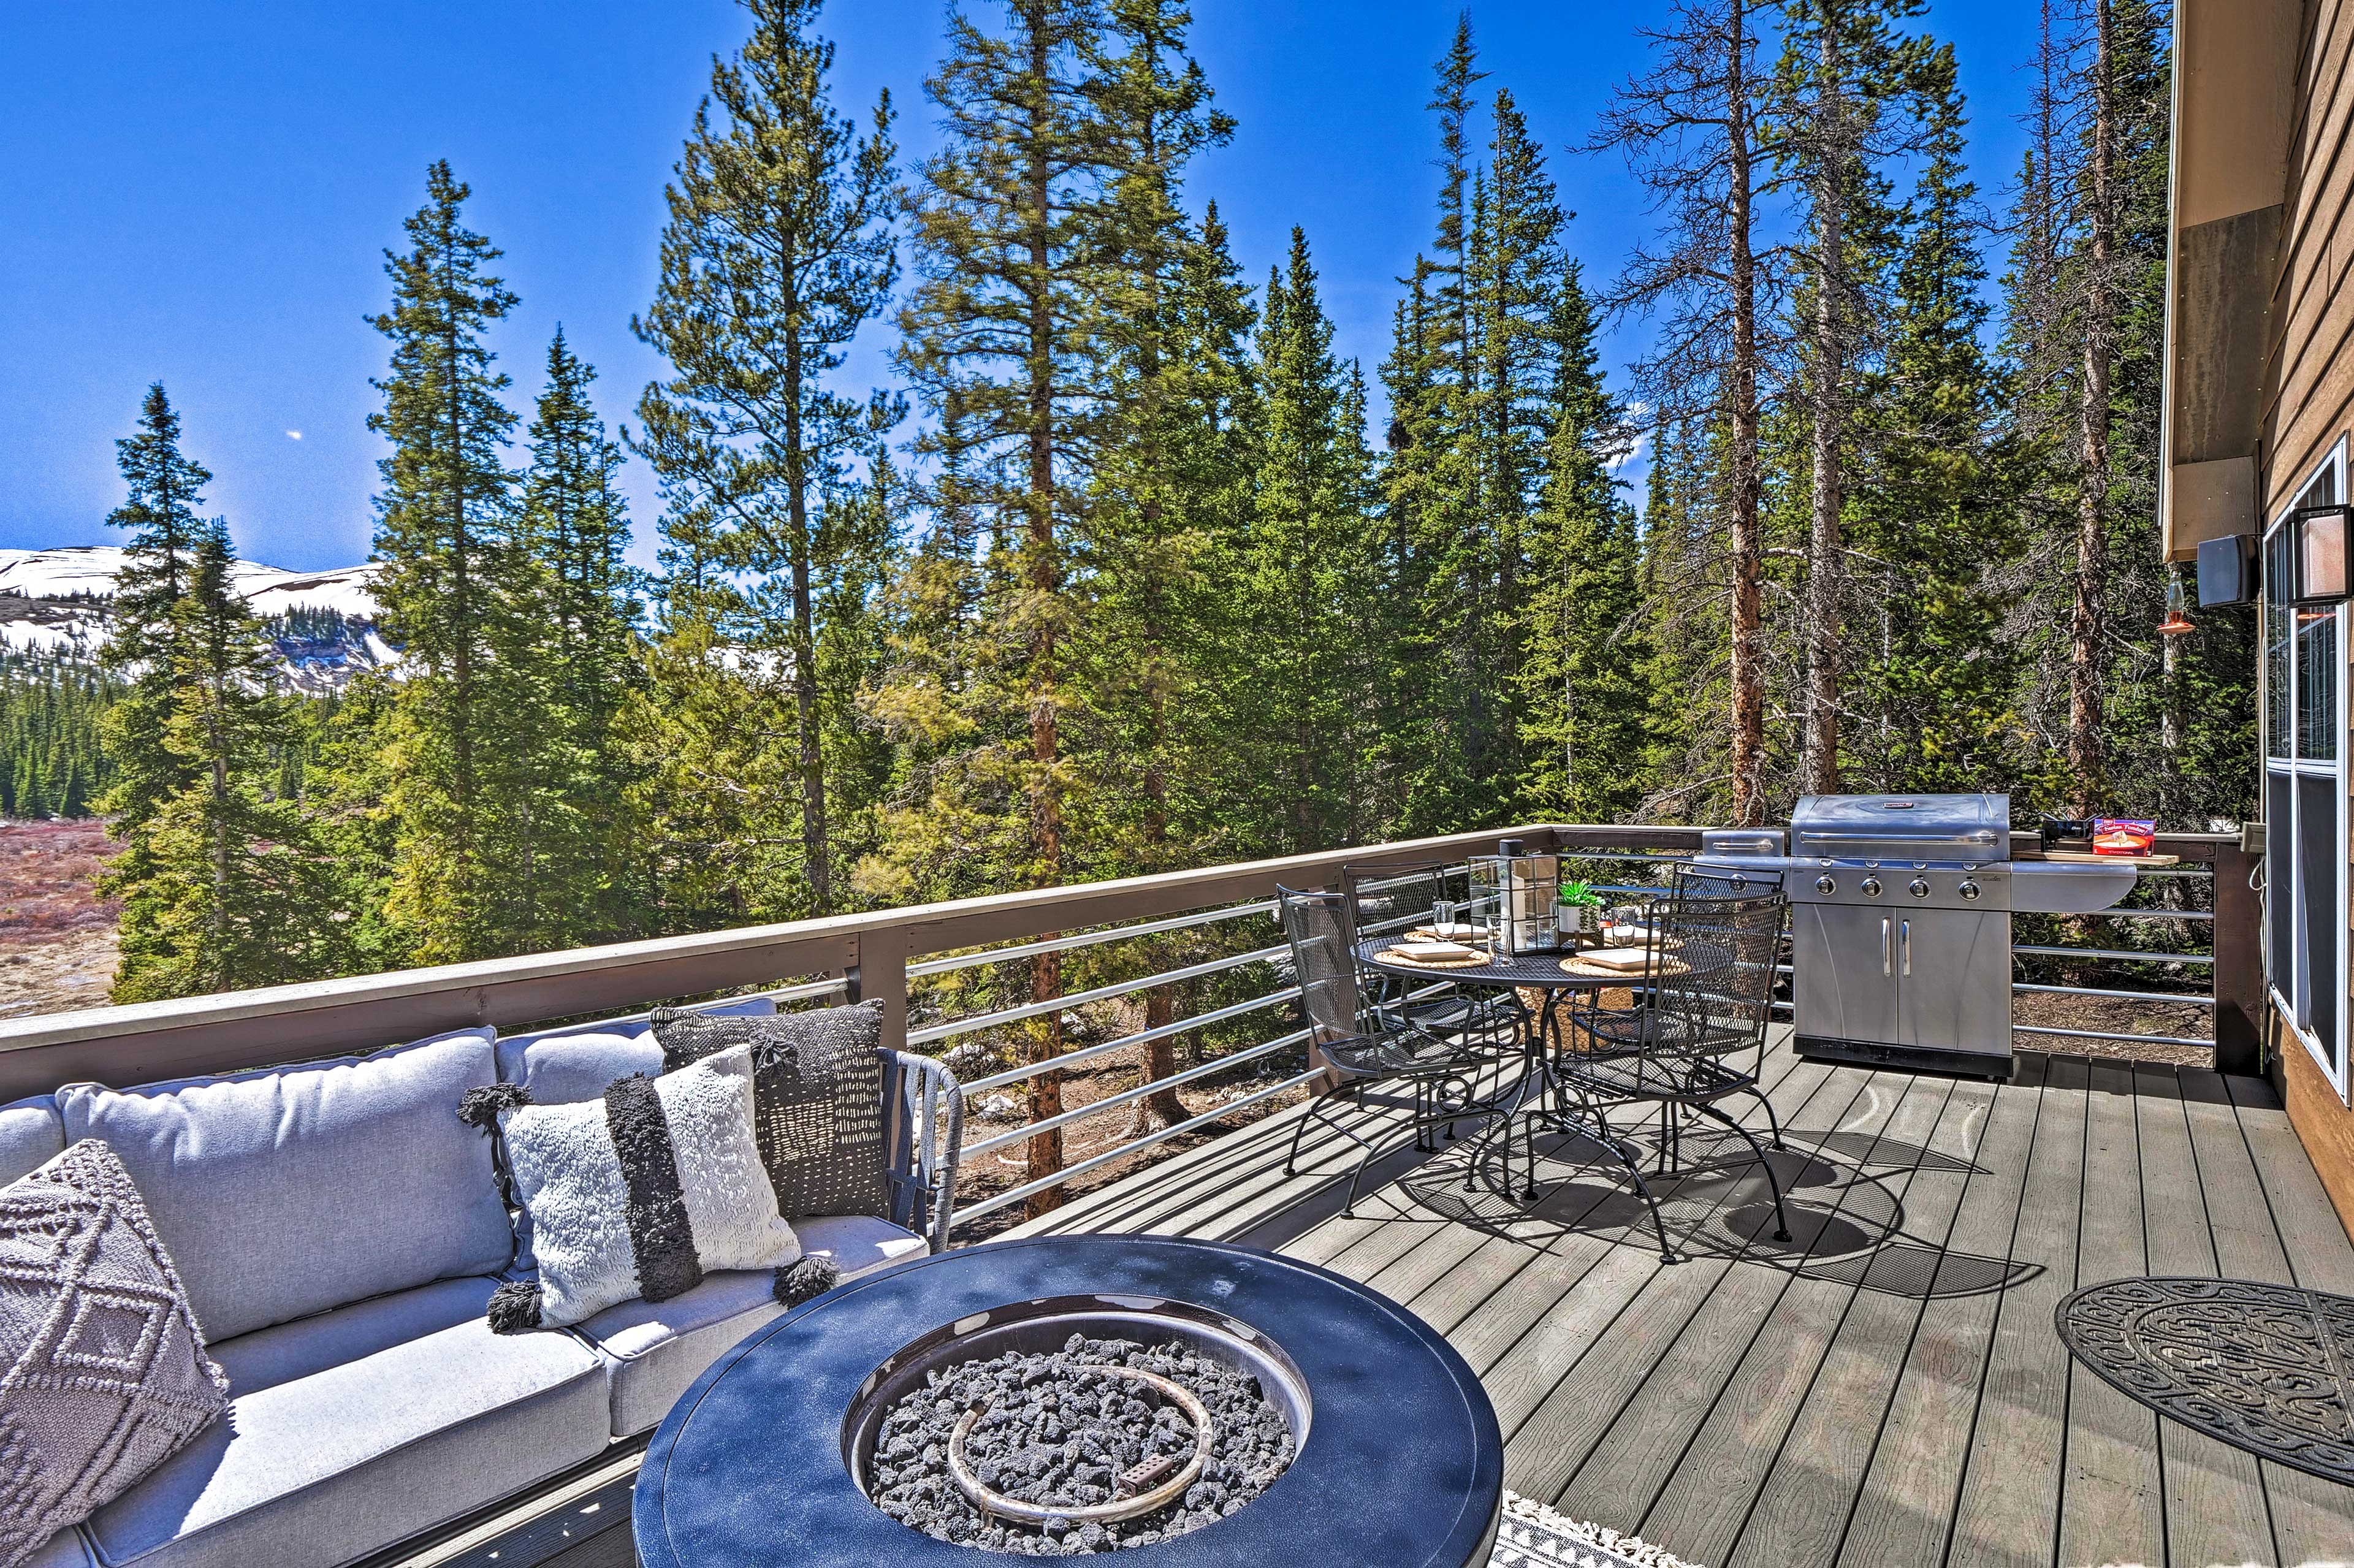 Private Deck   Gas Grill   Outdoor Dining Table   Mountain Views